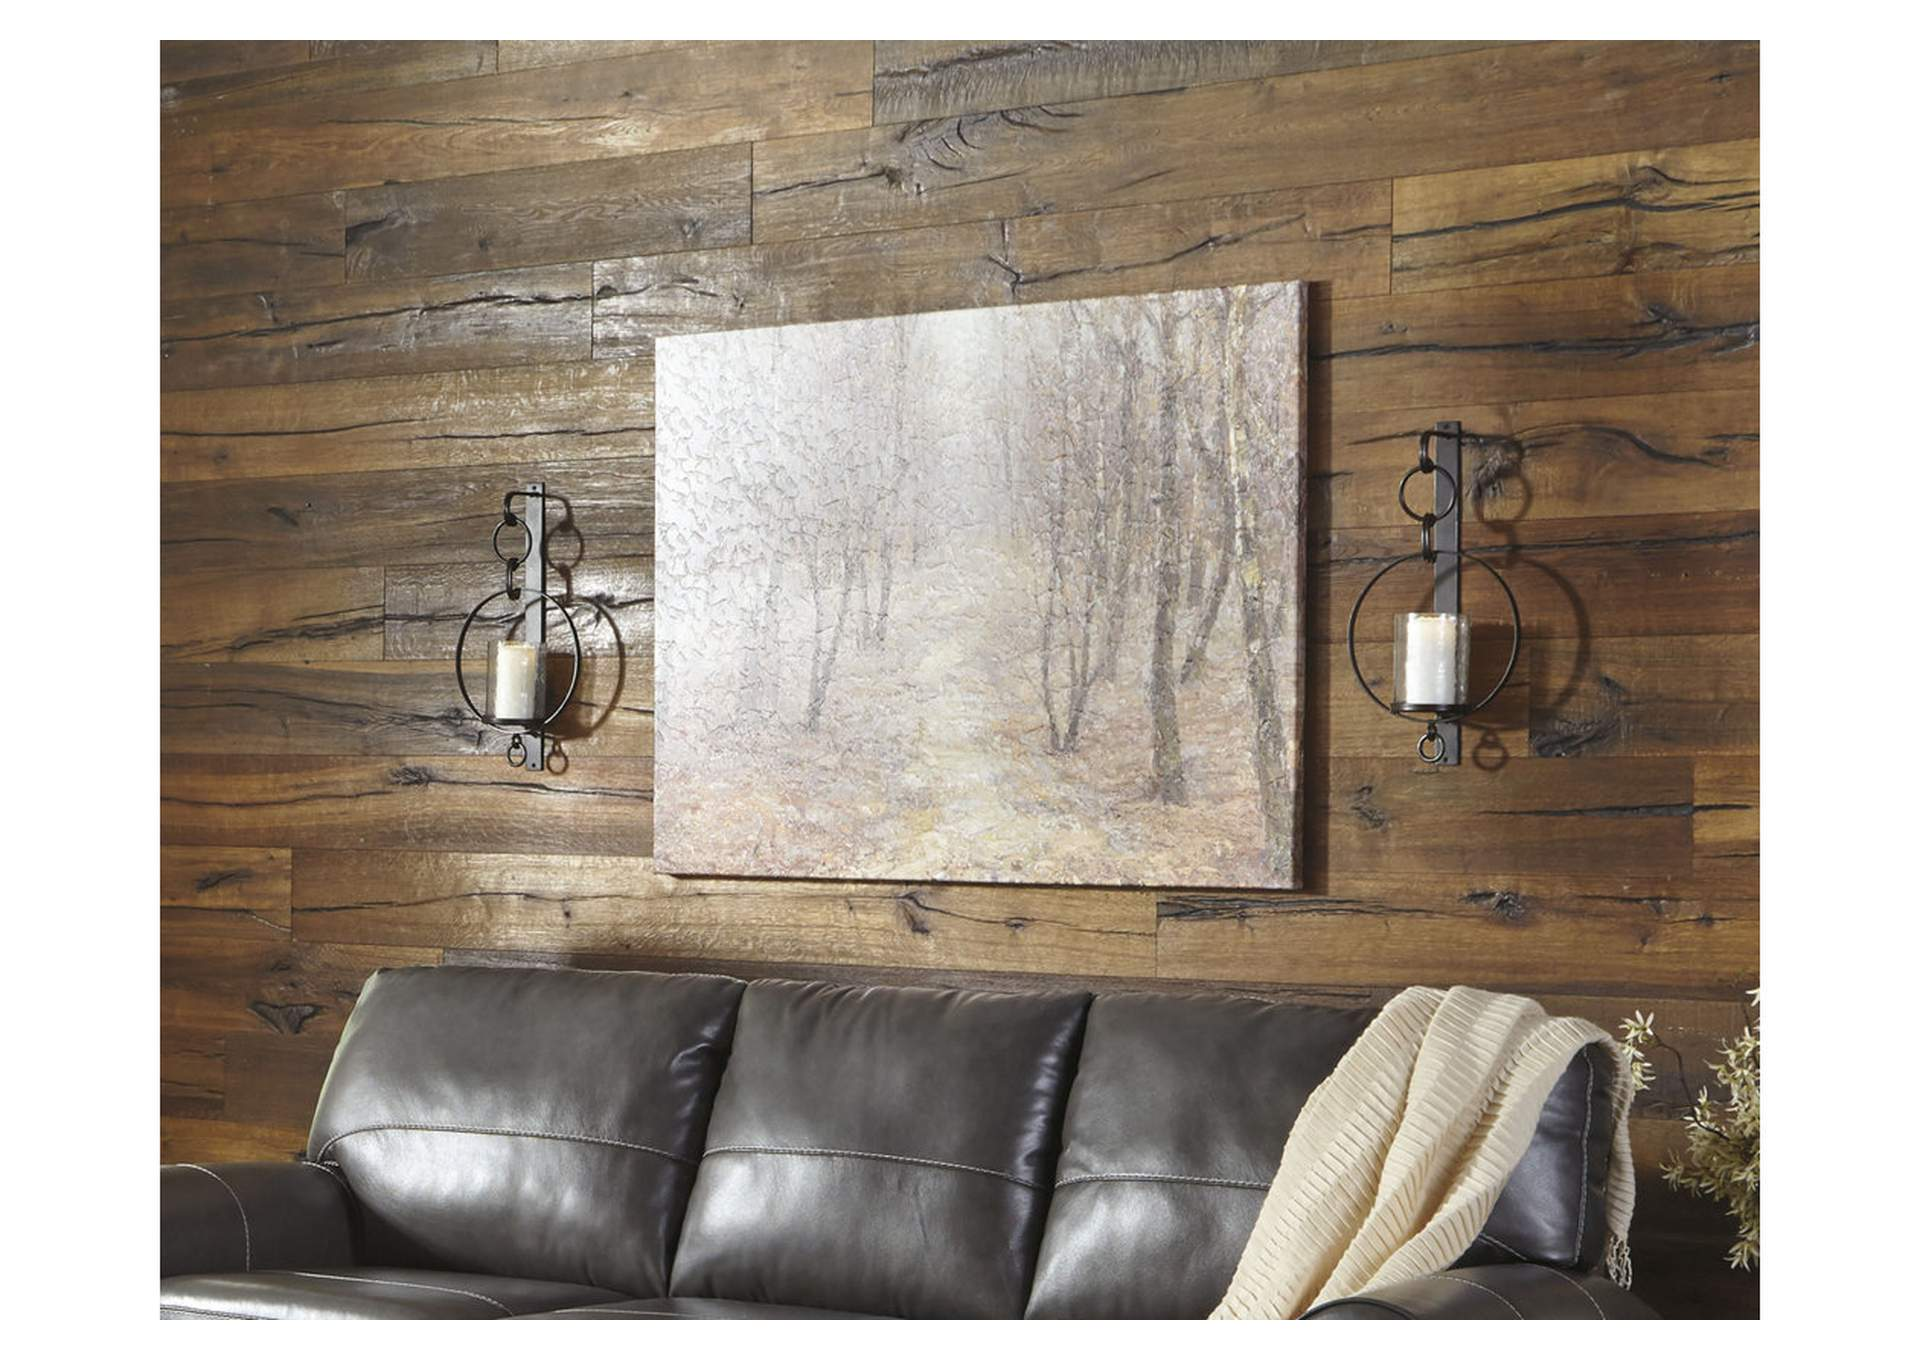 Ogaleesha Brown Wall Sconce,Direct To Consumer Express